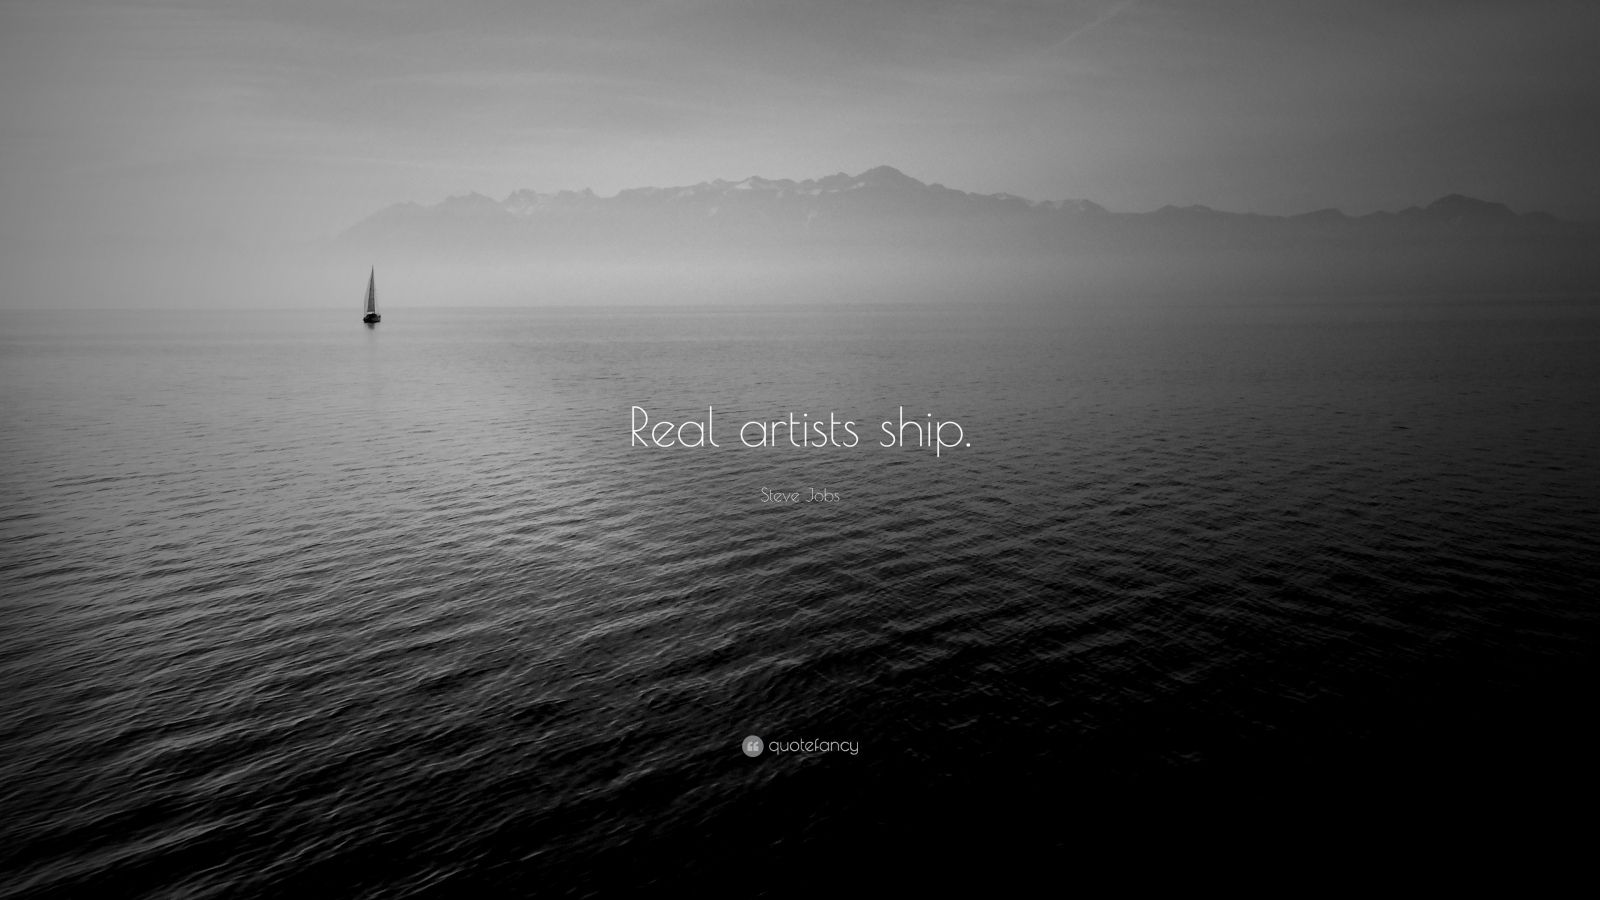 """Ship Quotes Steve Jobs Quote """"Real Artists Ship.""""  Wörter  Pinterest"""